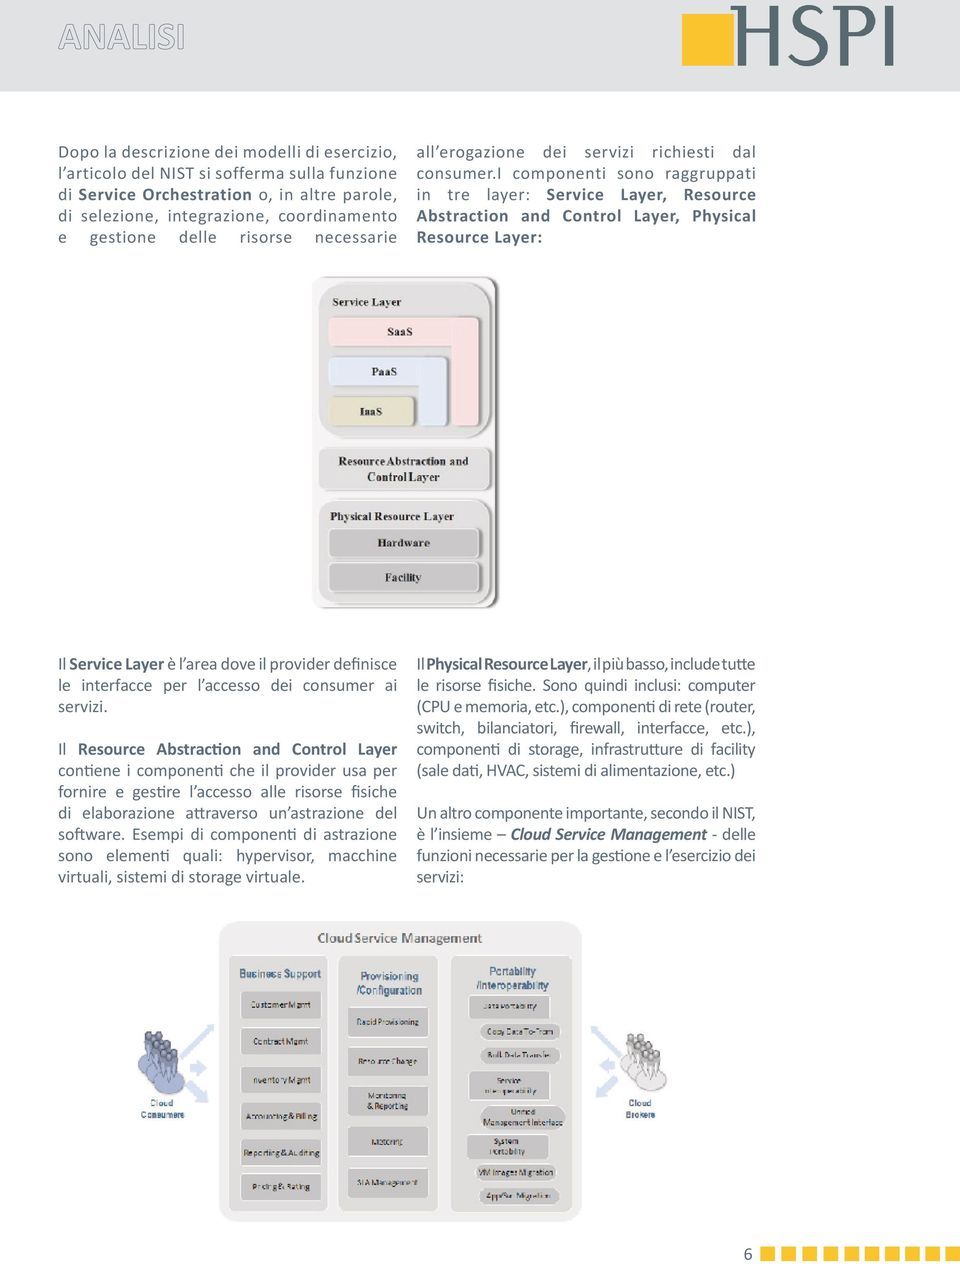 i componenti sono raggruppati in tre layer: Service Layer, Resource Abstraction and Control Layer, Physical Resource Layer: Il Service Layer è l area dove il provider definisce le interfacce per l